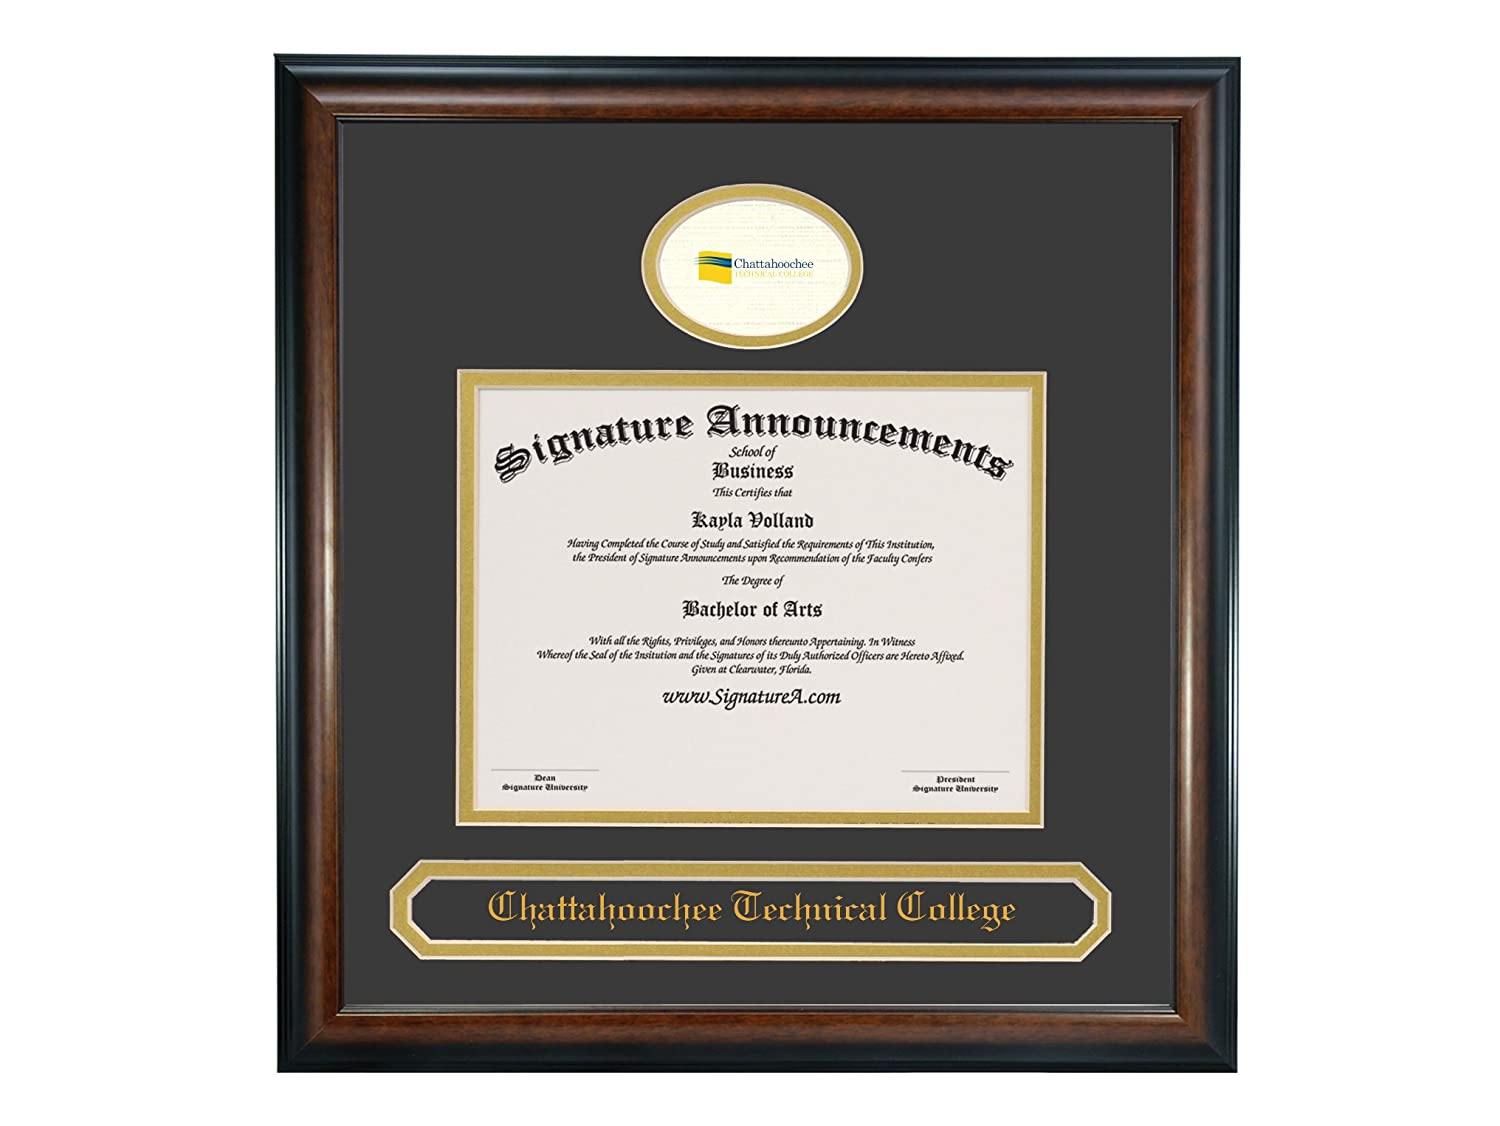 Signature Announcements Chattahoochee-Technical-College Undergraduate Professional//Doctor Sculpted Foil Seal /& Name Graduation Diploma Frame 16 x 16 Matte Mahogany